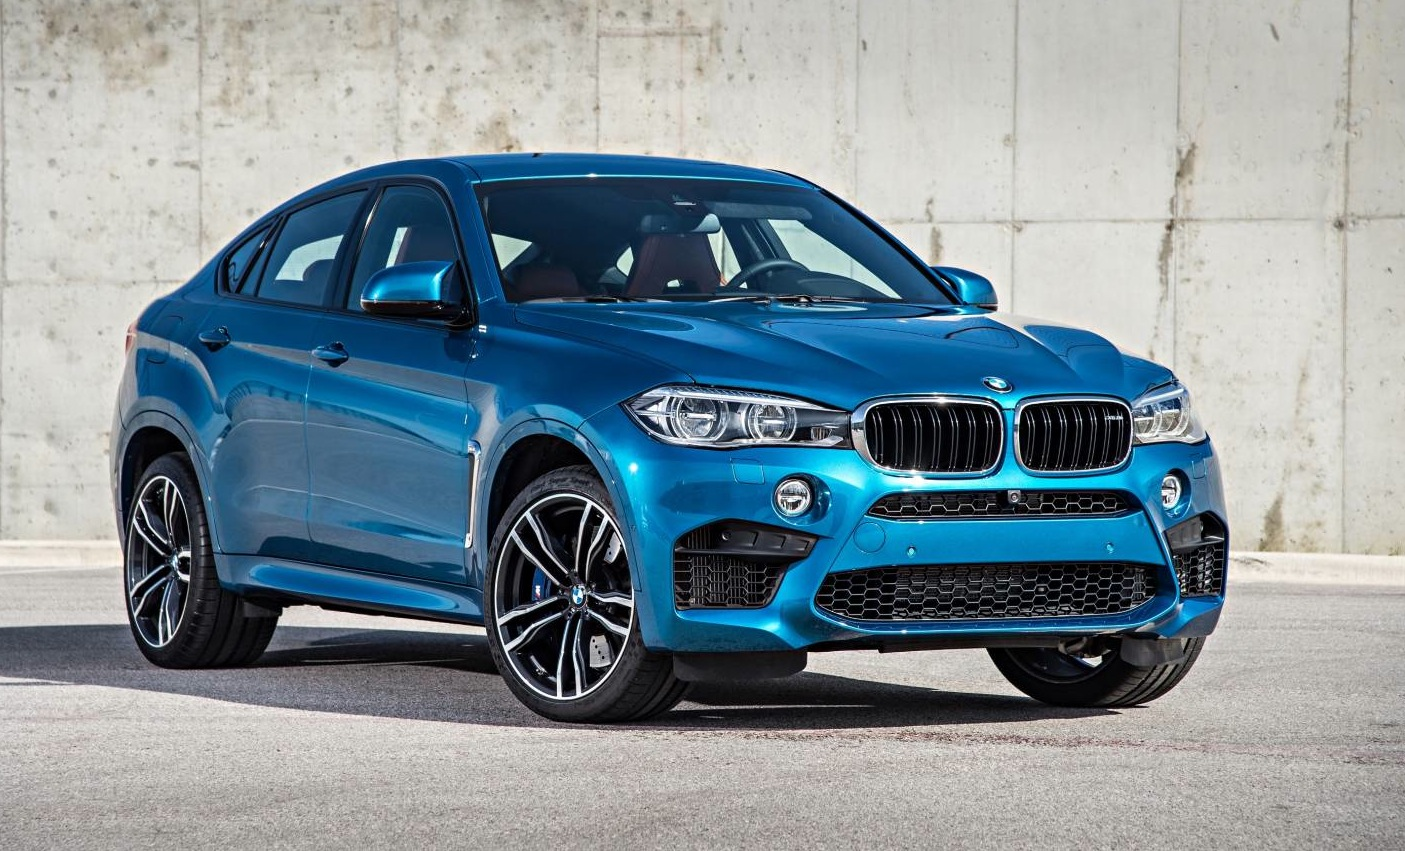 2015 bmw x5 m x6 m on sale in australia from 185 900 performancedrive. Black Bedroom Furniture Sets. Home Design Ideas